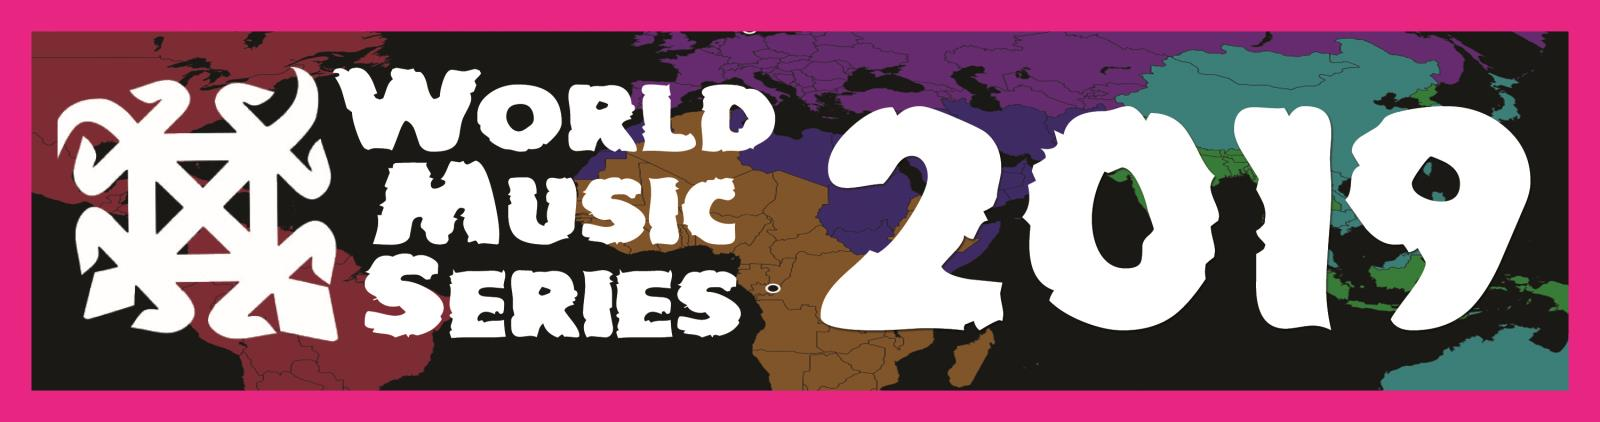 World Music Series 2019 Banner